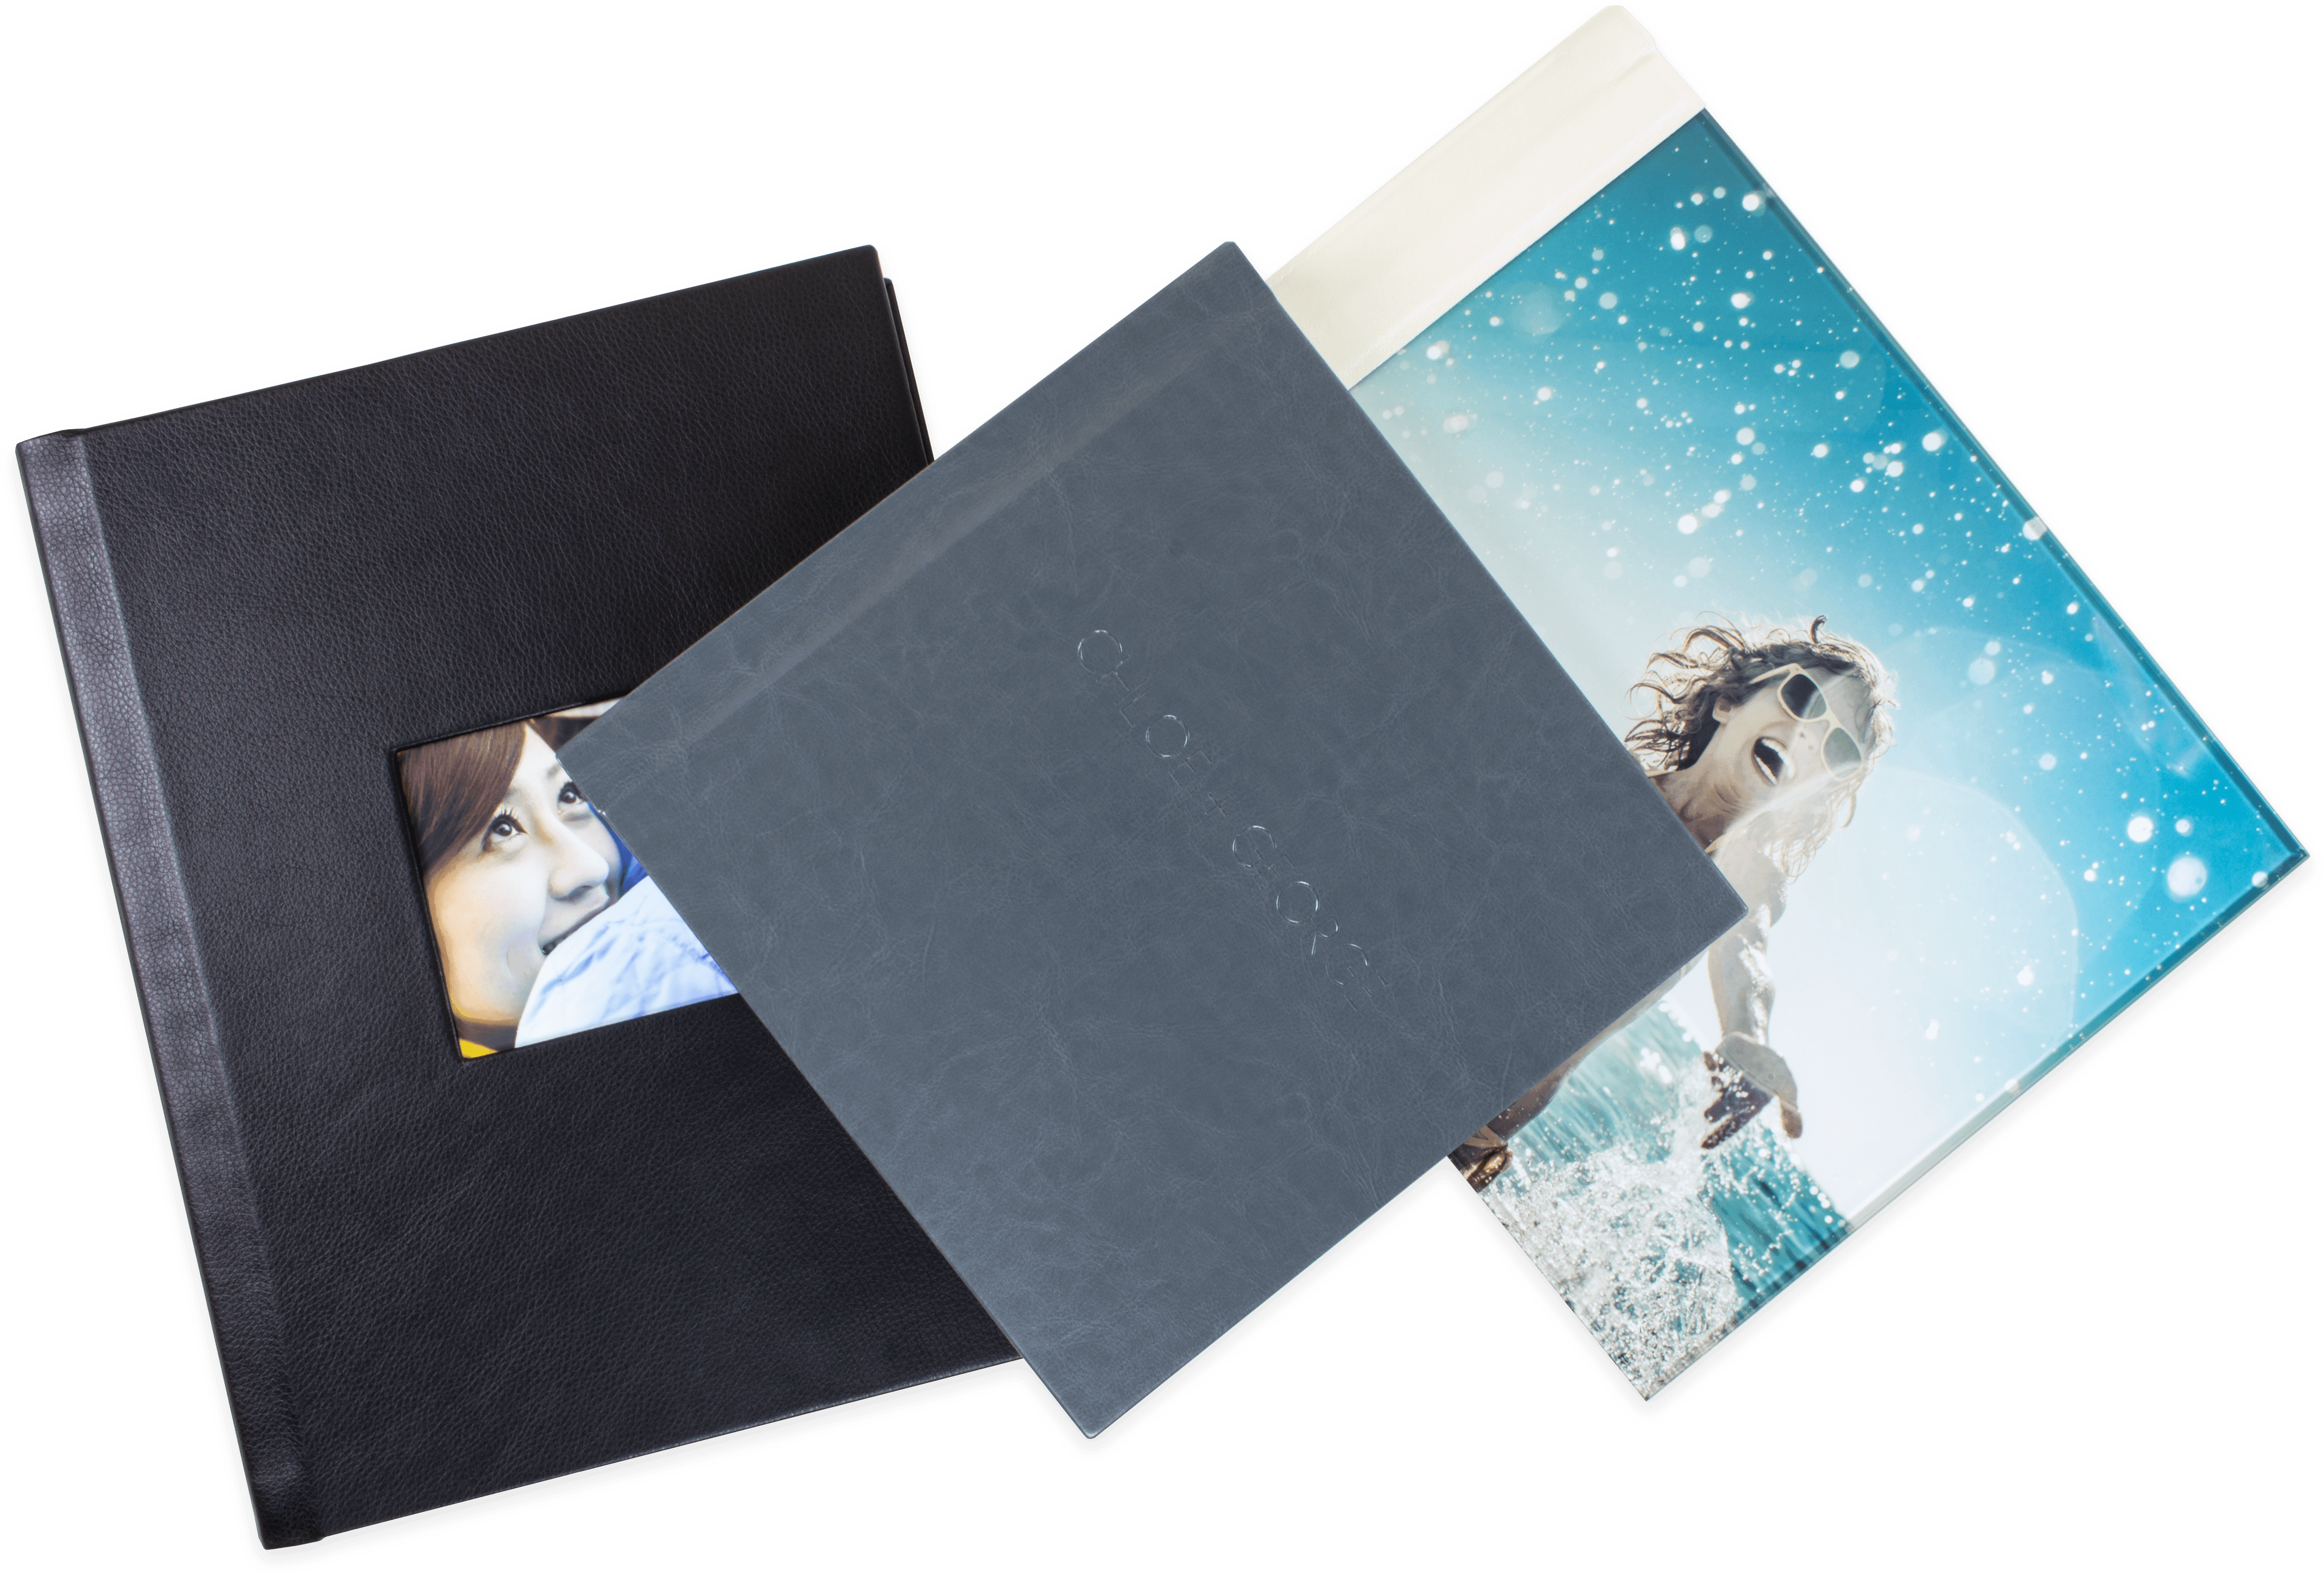 Album Envy for all of your Photographs